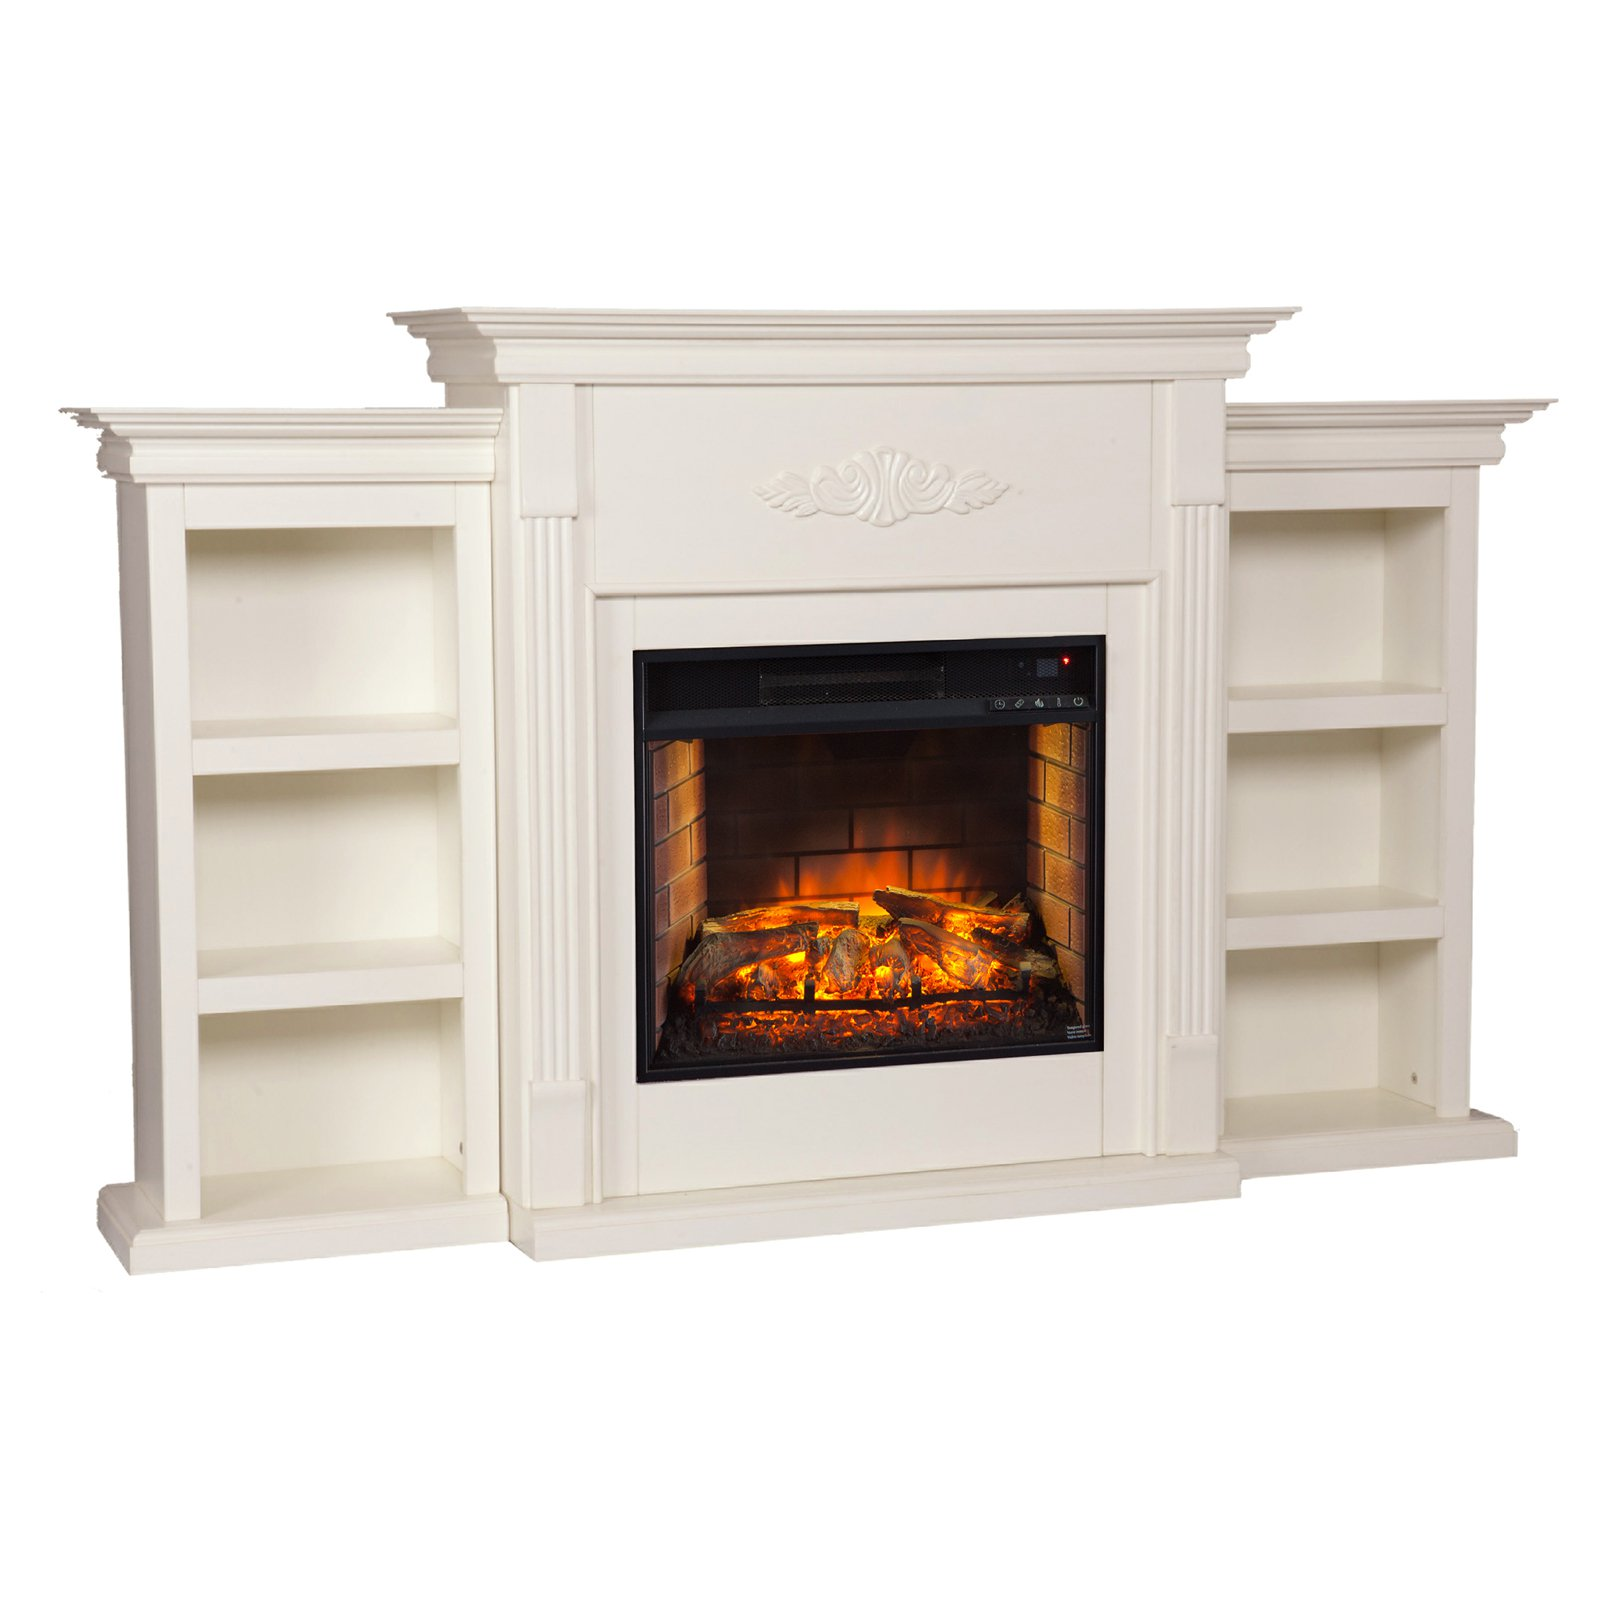 Southern Enterprises Tennyson Infrared Electric Fireplace with Bookcase by Southern Enterprises